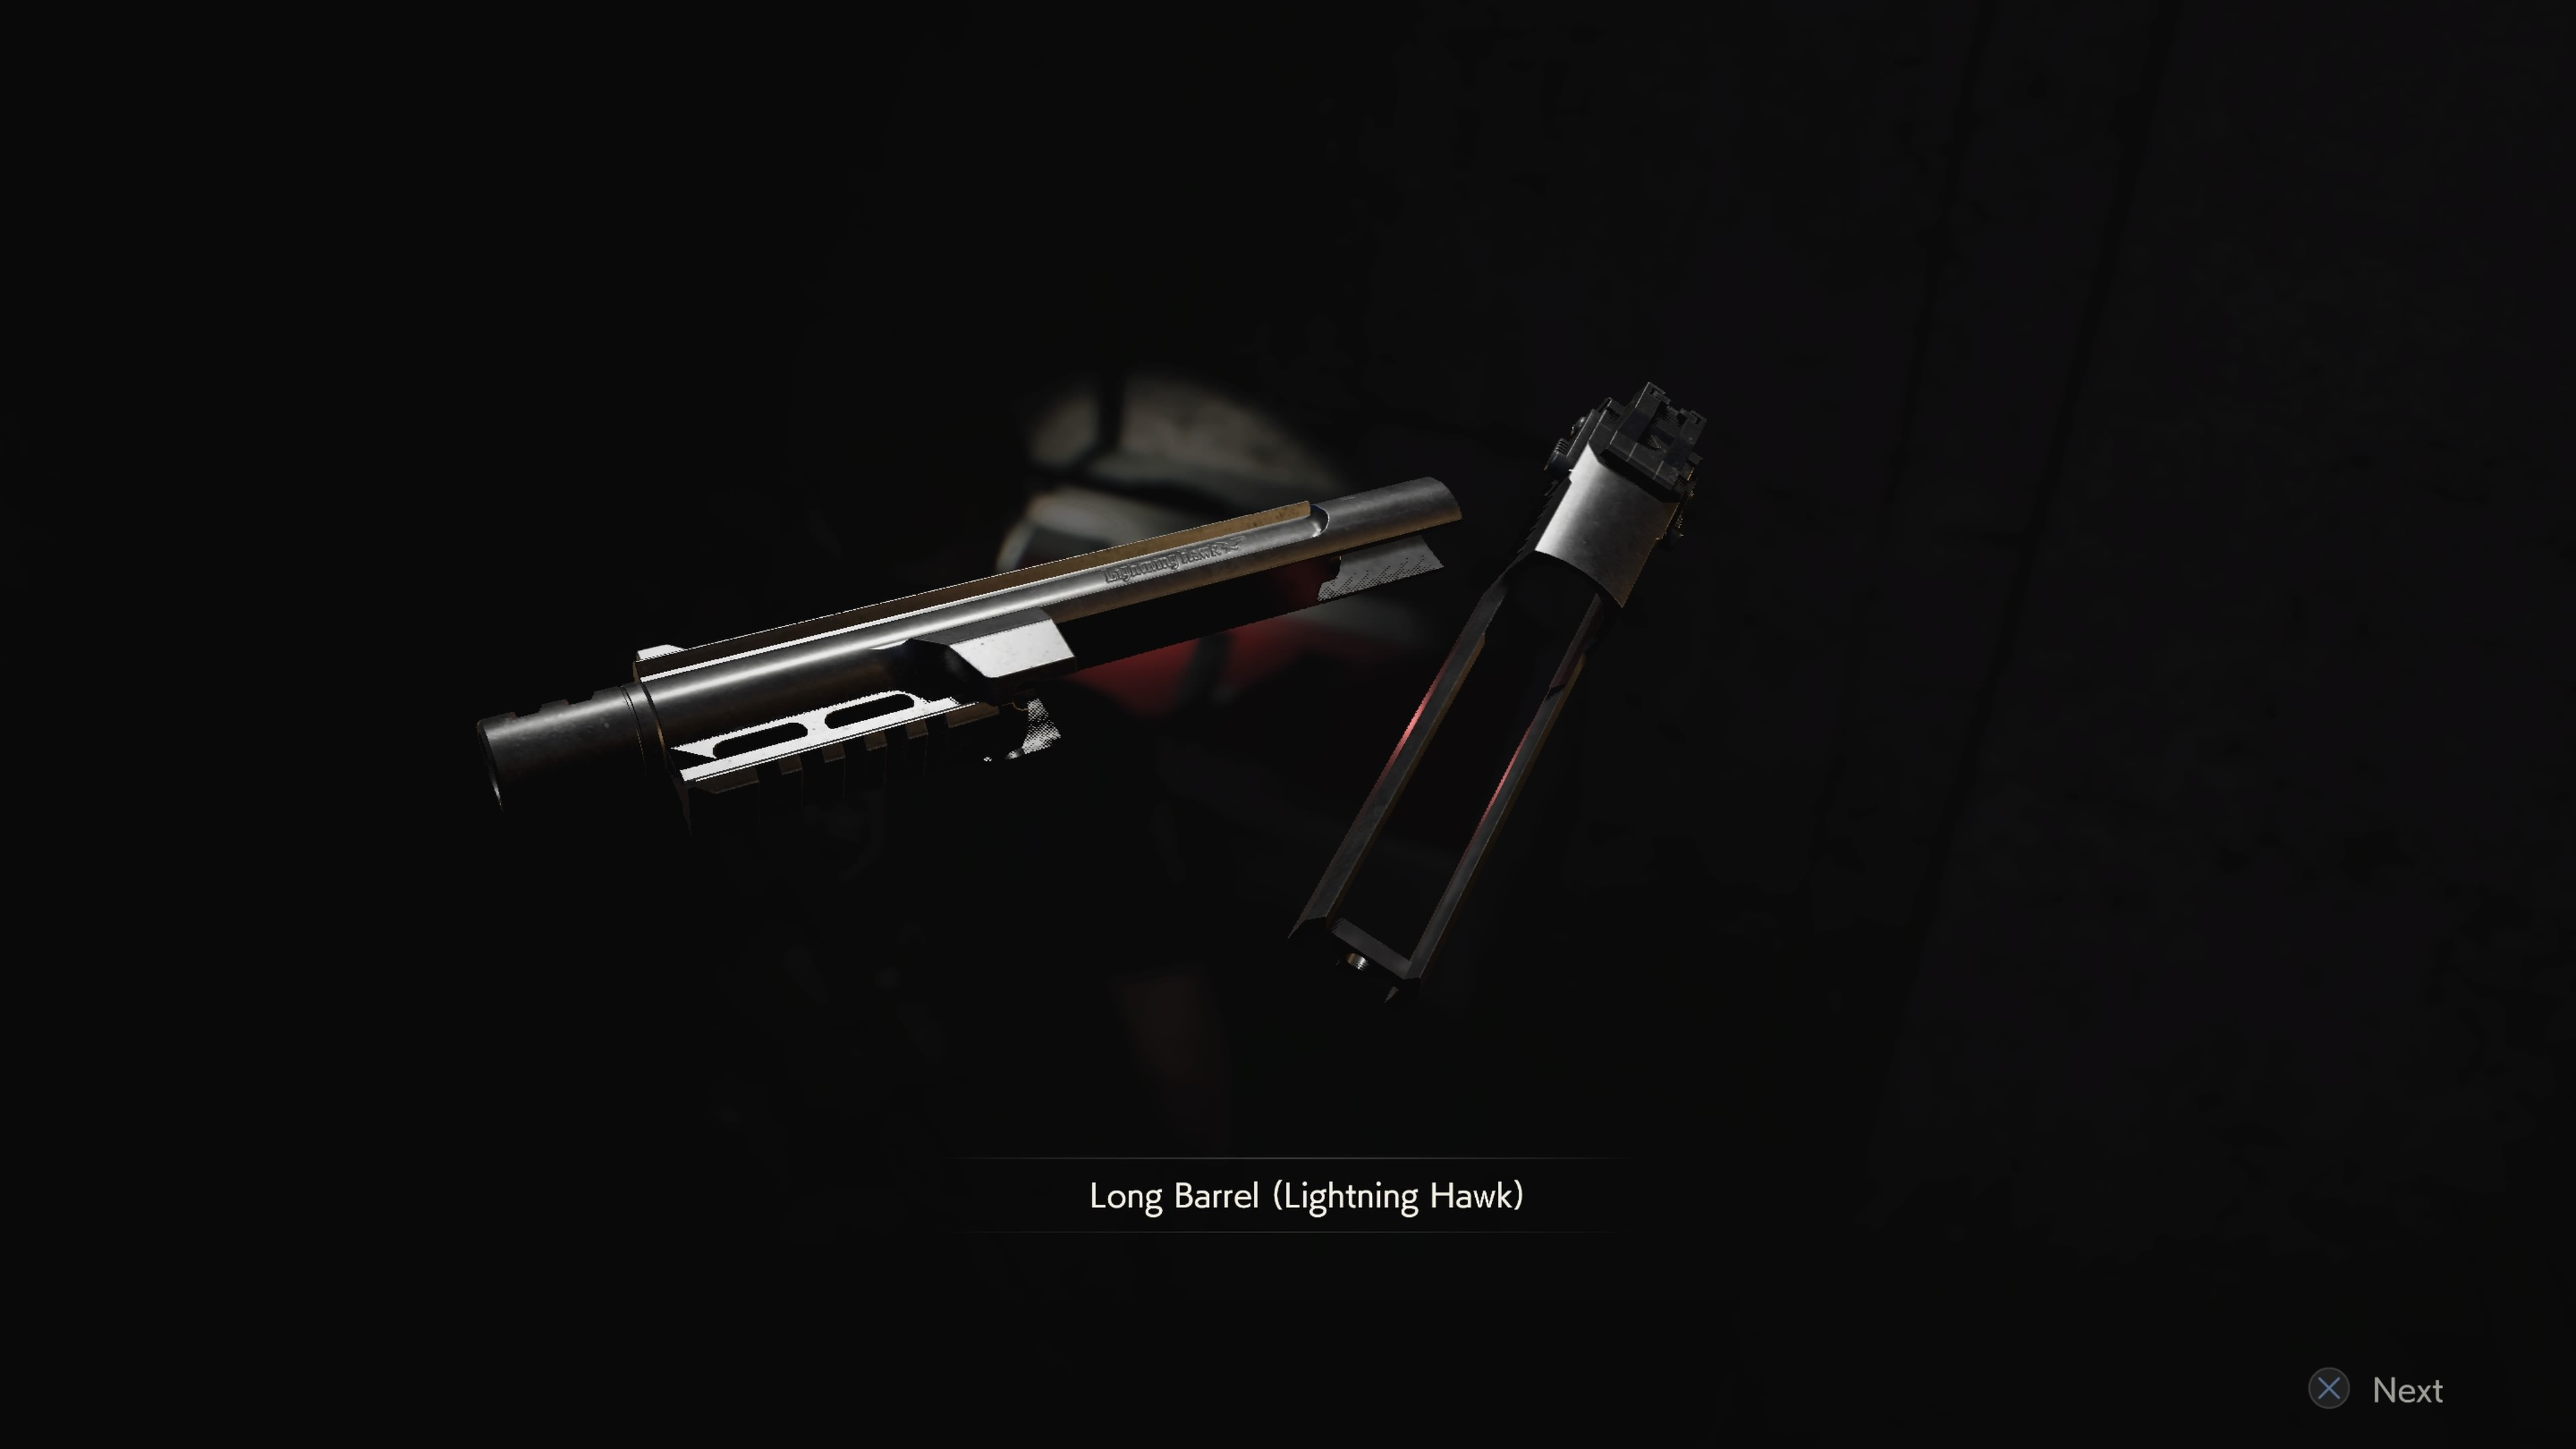 How to get the Lightning Hawk Long Barrel in Resident Evil 2